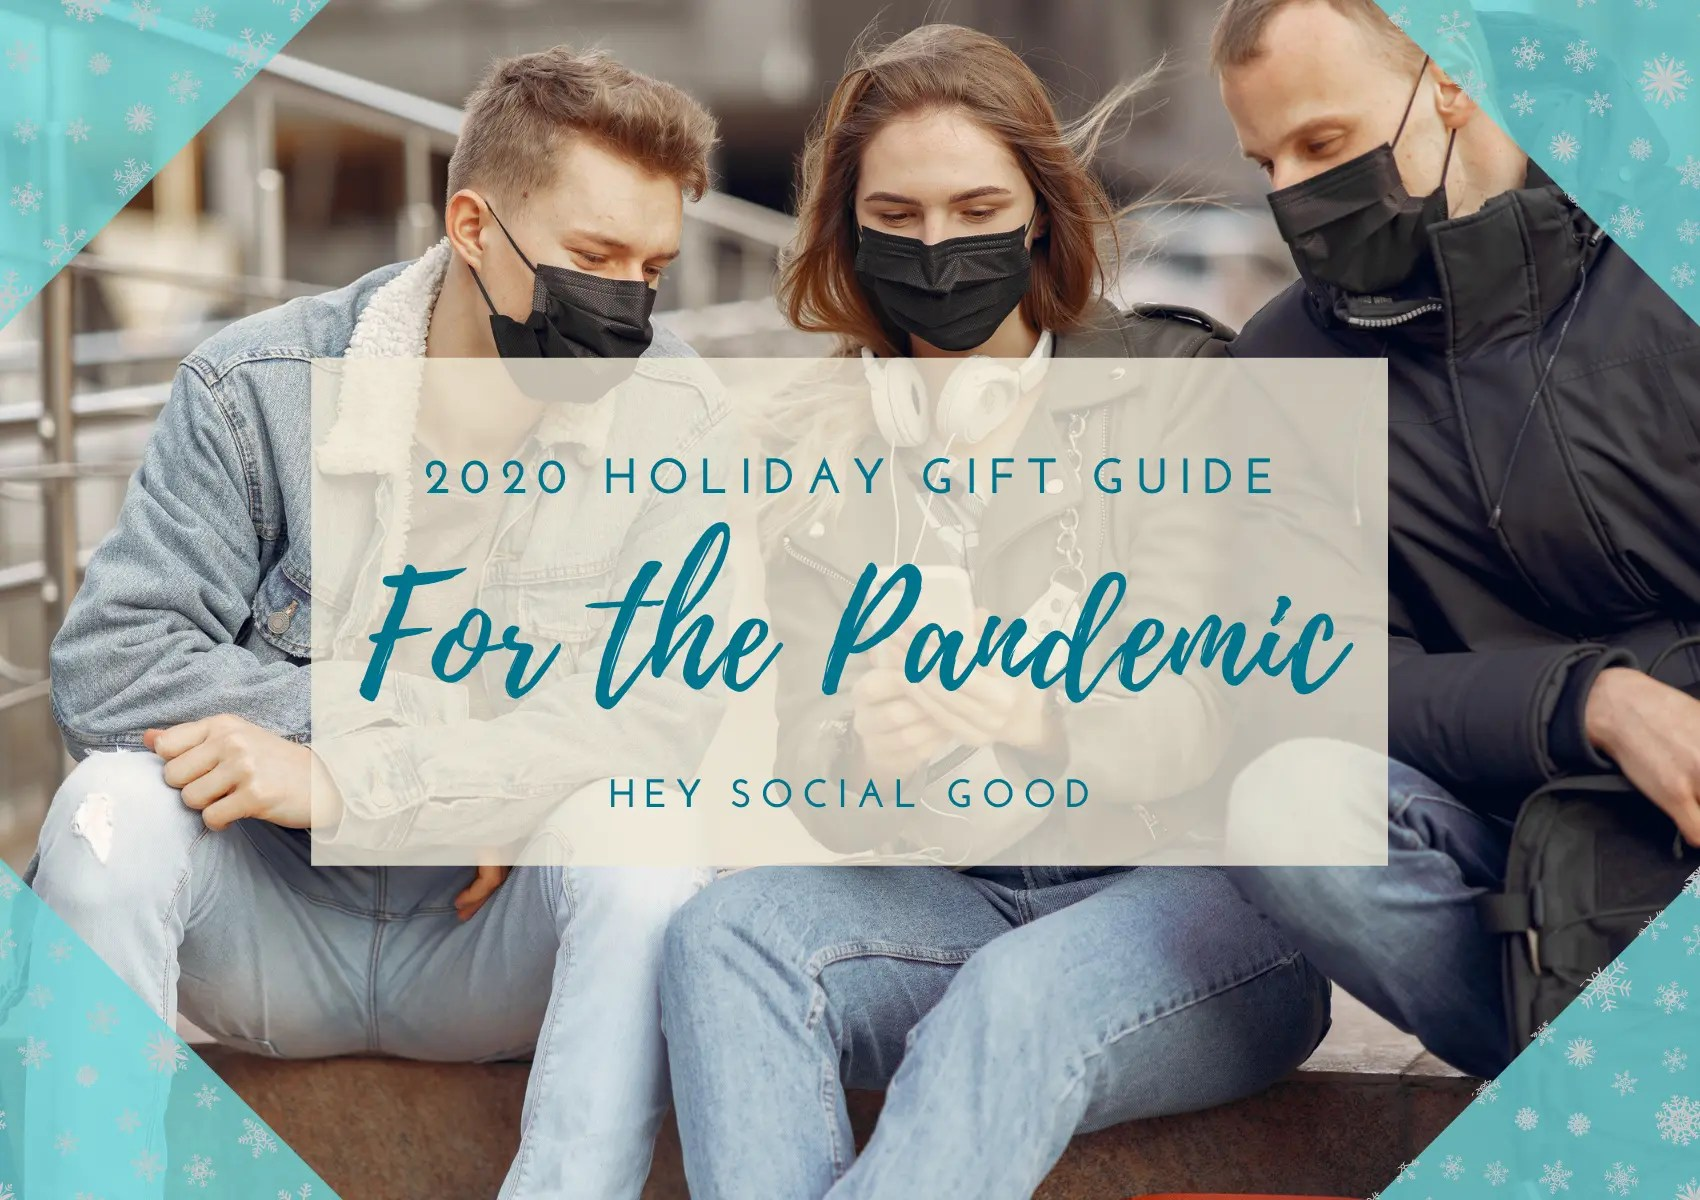 Sustainable and Ethical Holiday Gift Guide for the Pandemic